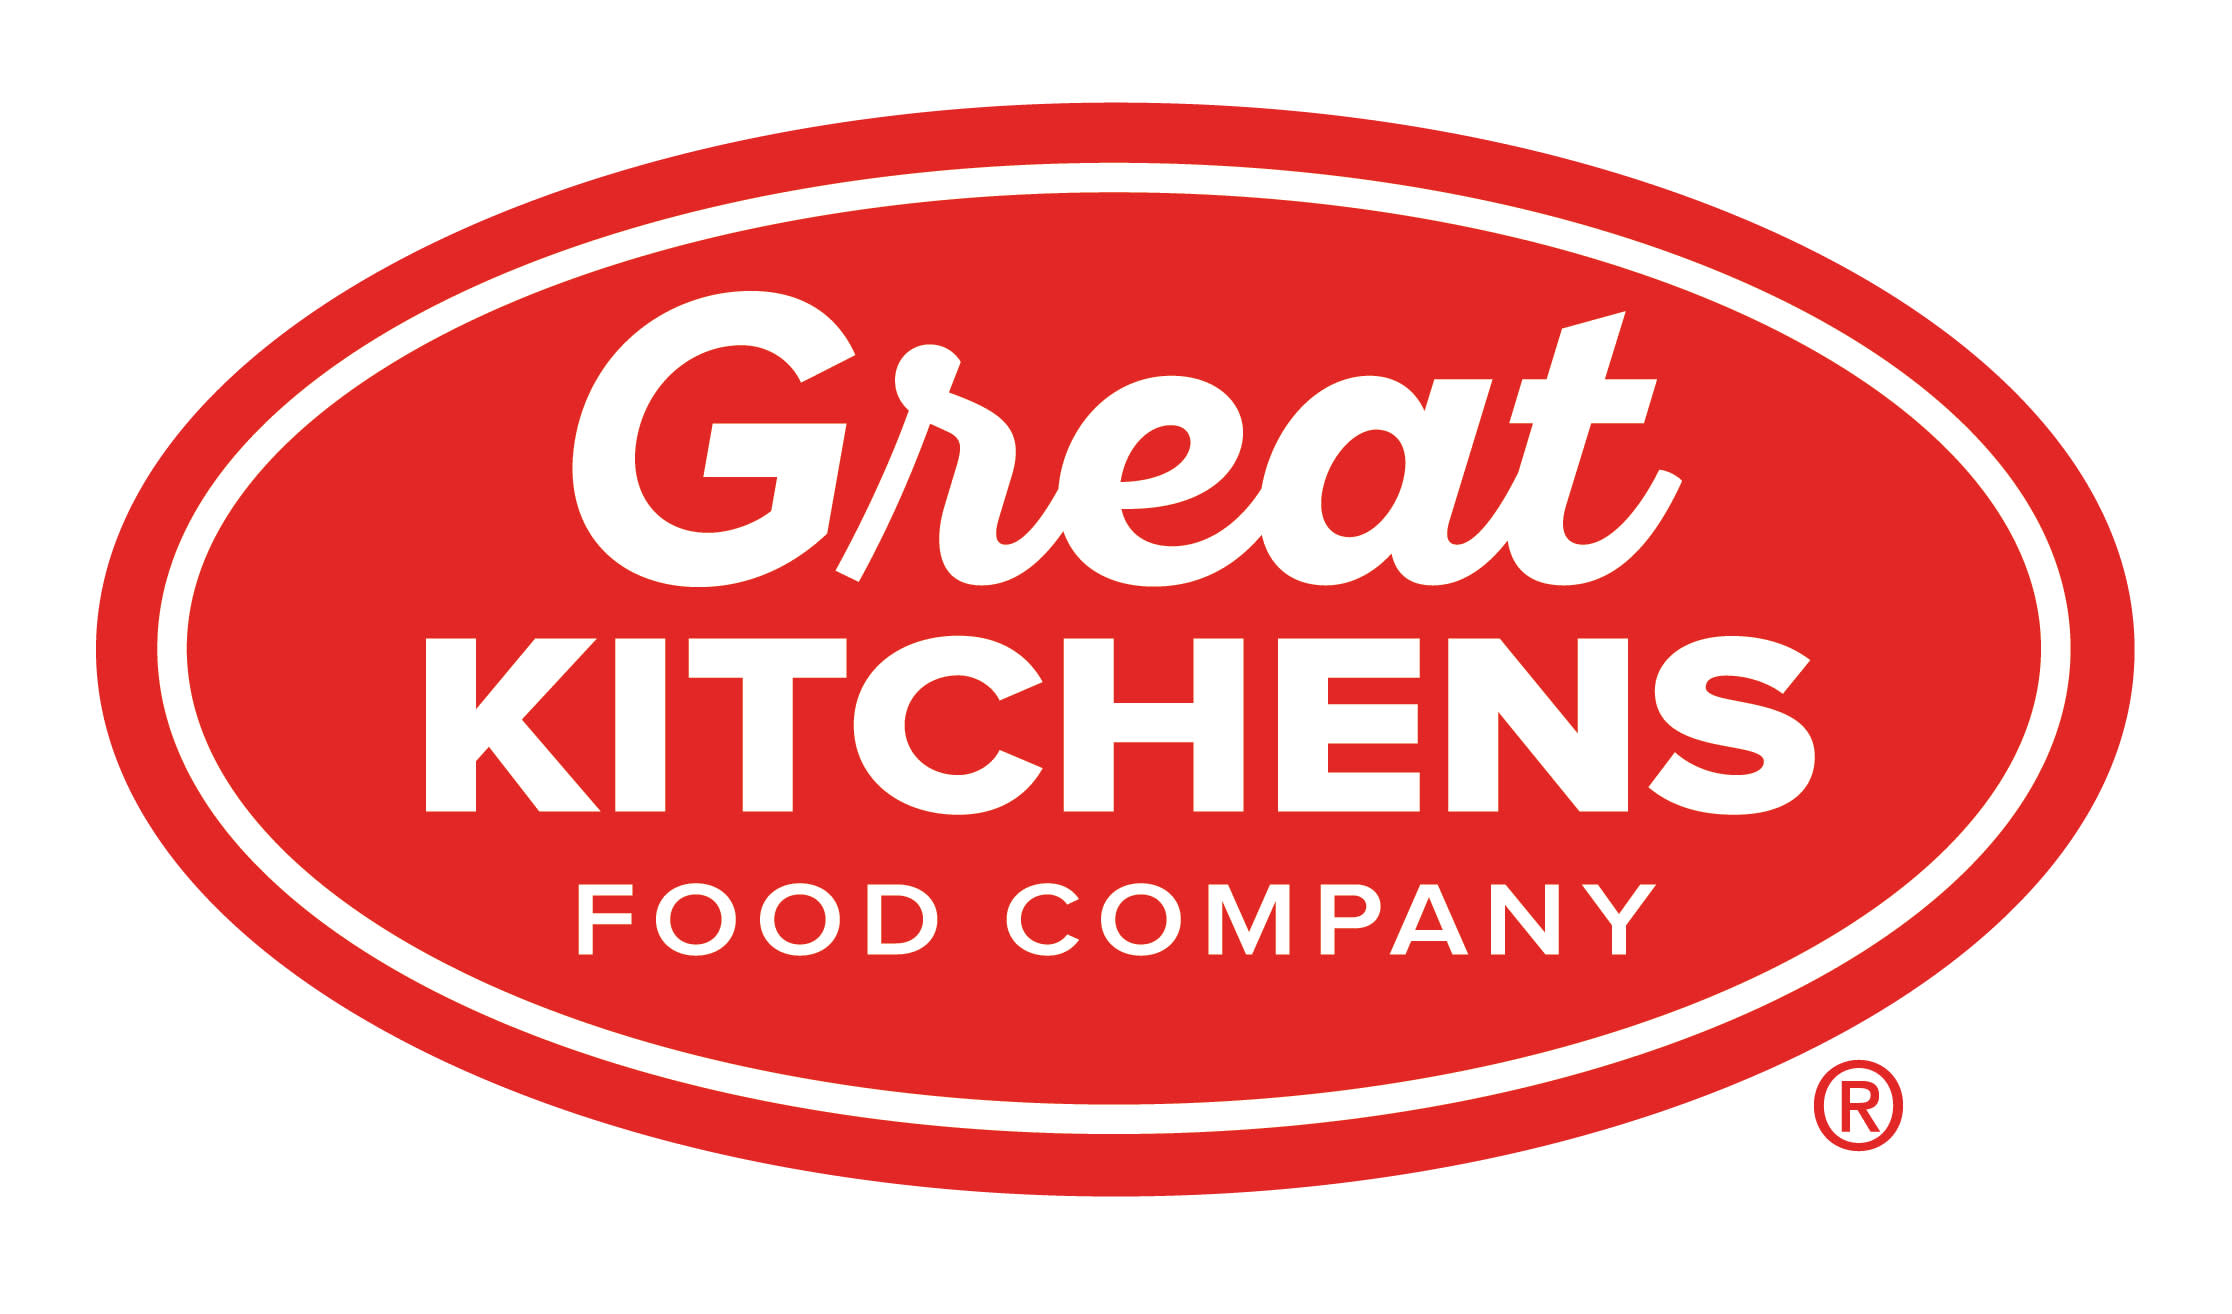 Great Kitchens Food Company Crunchbase Profile Funding